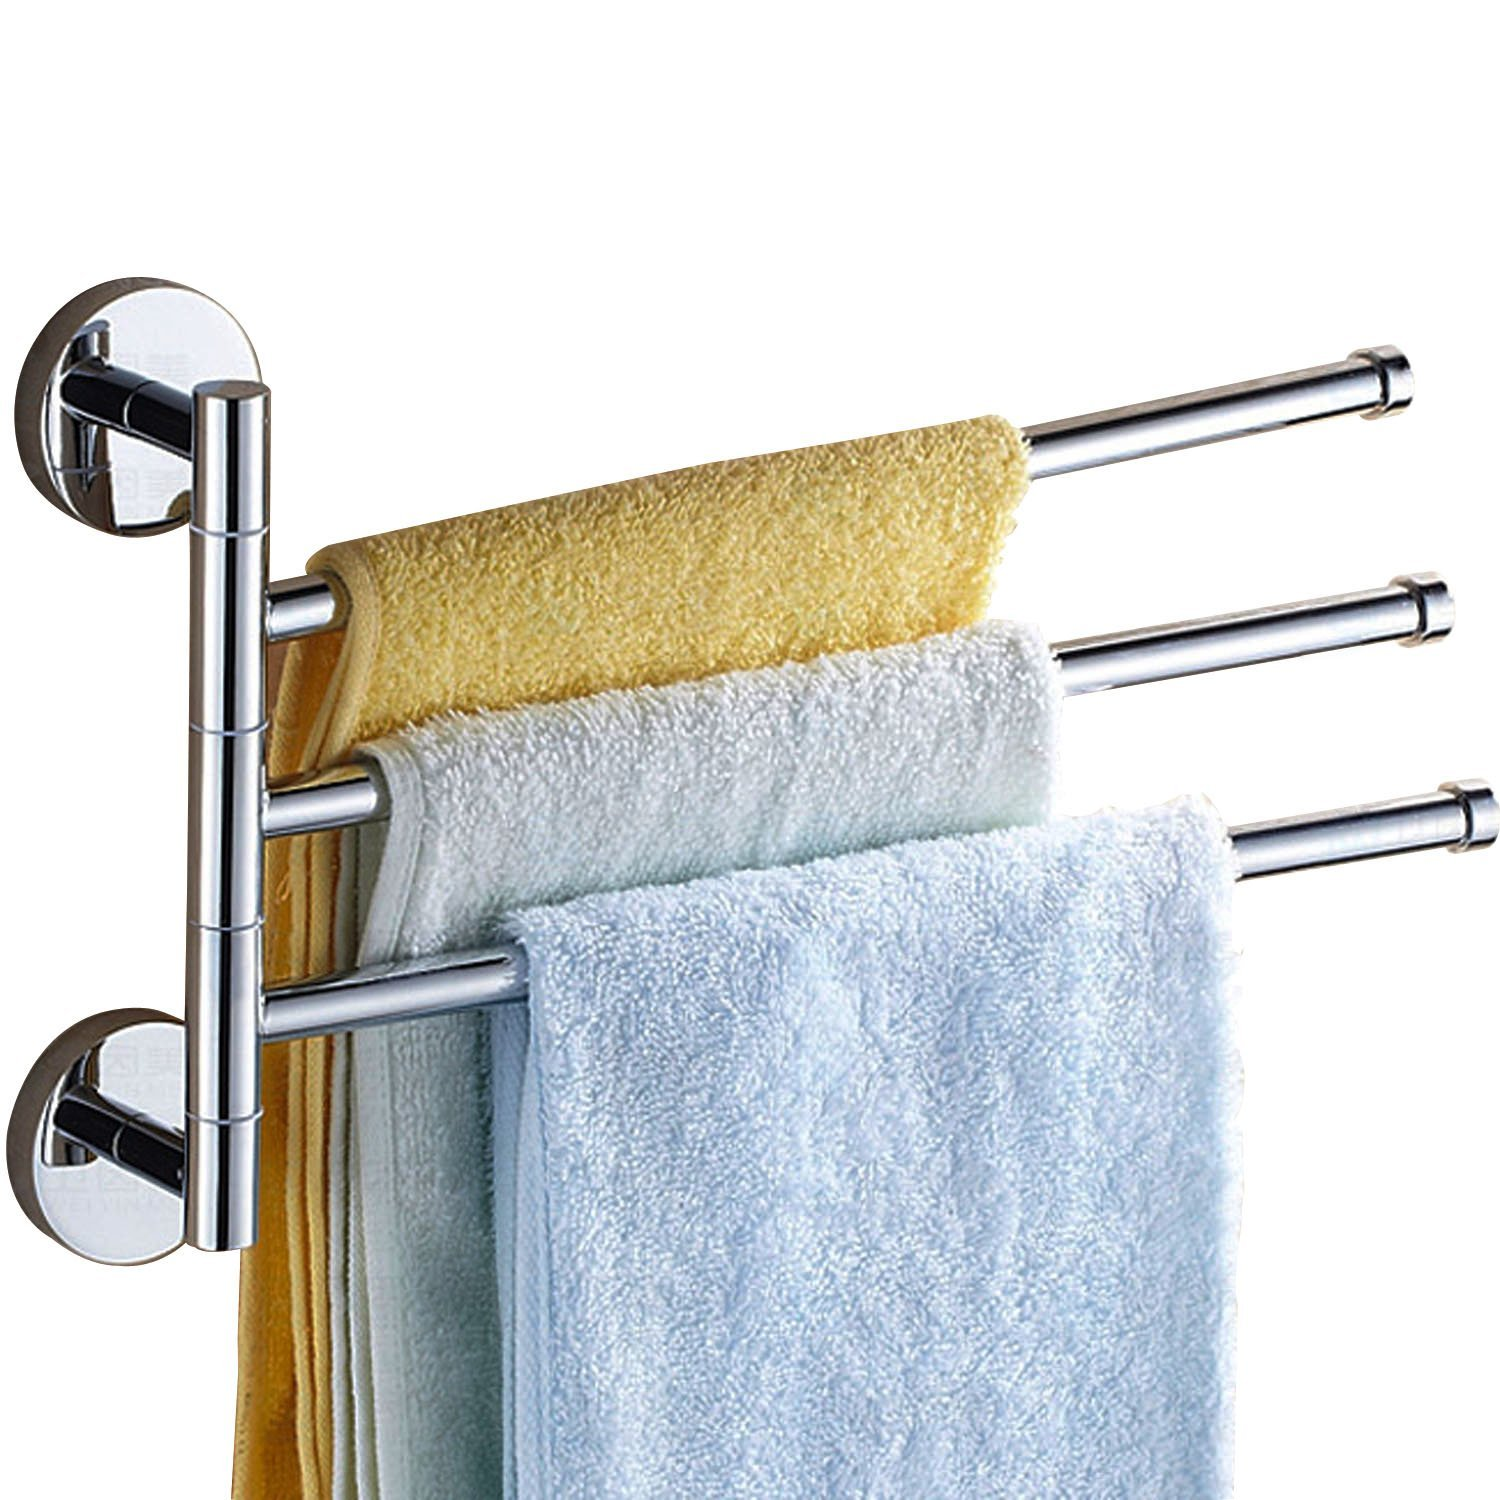 Luxury Bathroom Solid Brass Chrome Polished Rotate 3 Arms Towel BarRail Rack Swivel Holder,Wall Mounted